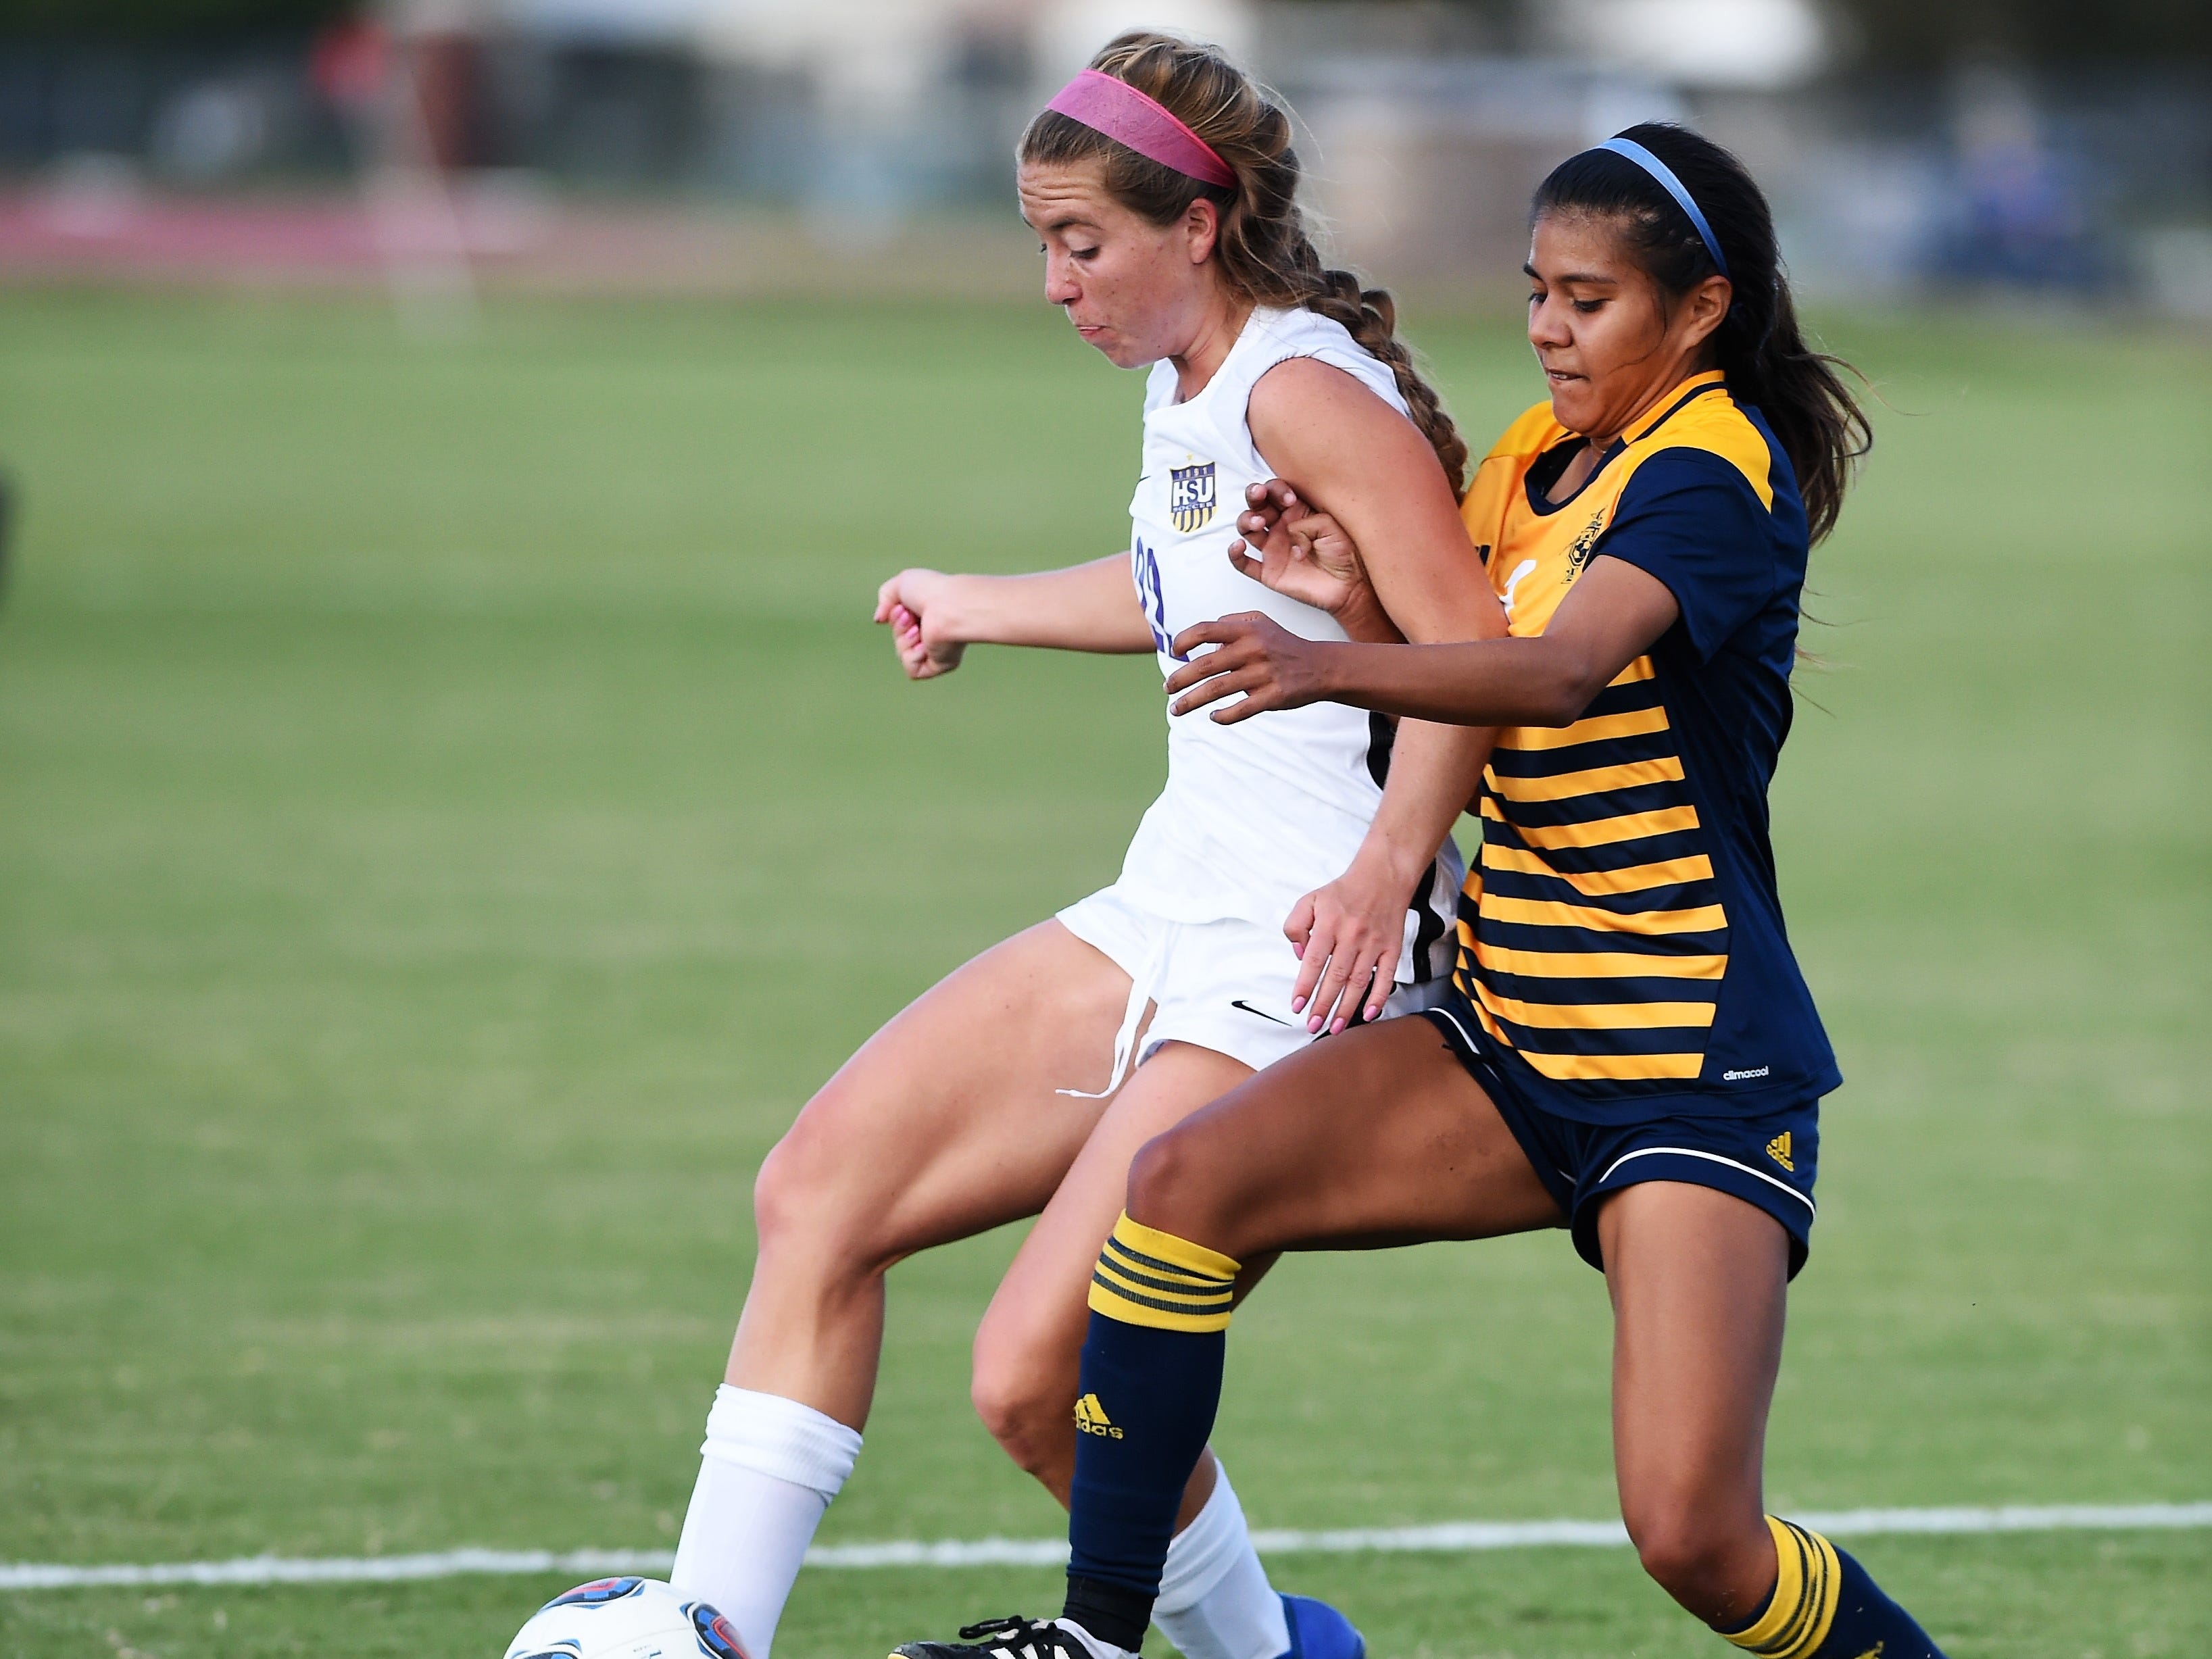 Hardin-Simmons defender Kendell Groom (22) holds off a Howard Payne defender at the ends of the box at the HSU soccer complex on Thursday, Oct. 11, 2018. The Cowgirls won 4-1.